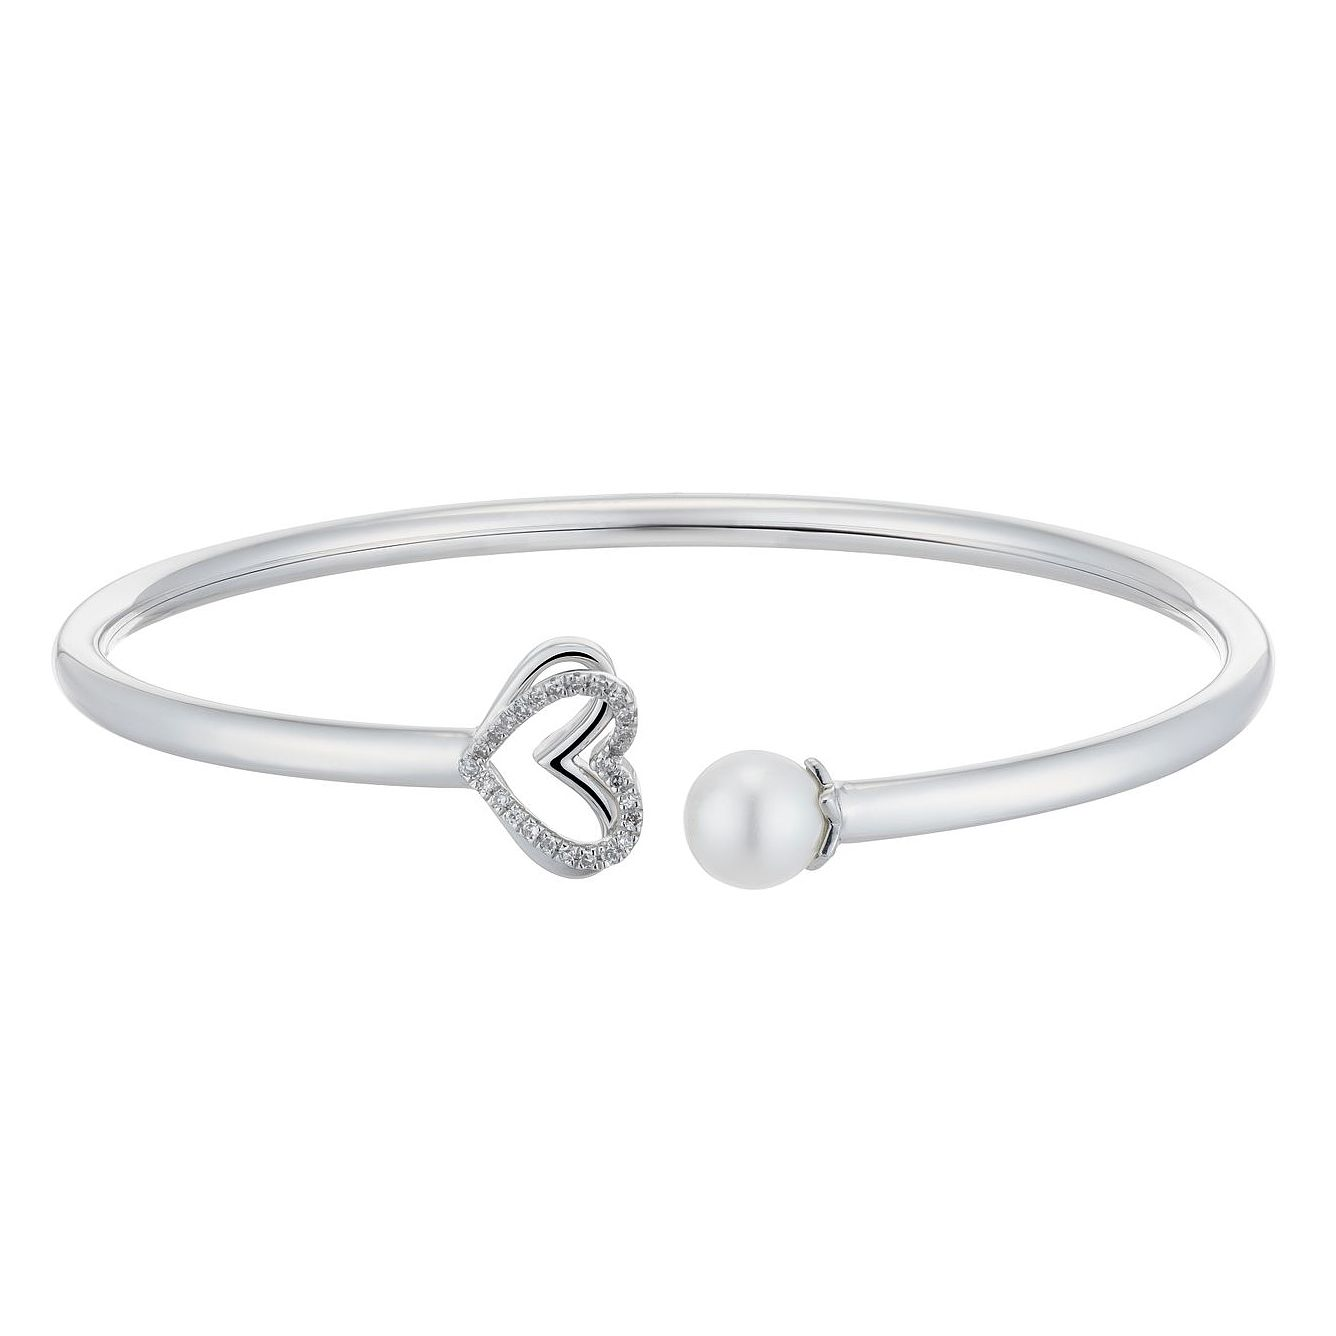 Vera Wang Silver, Cultured Freshwater Pearl & Diamond Bangle - Product number 3331741